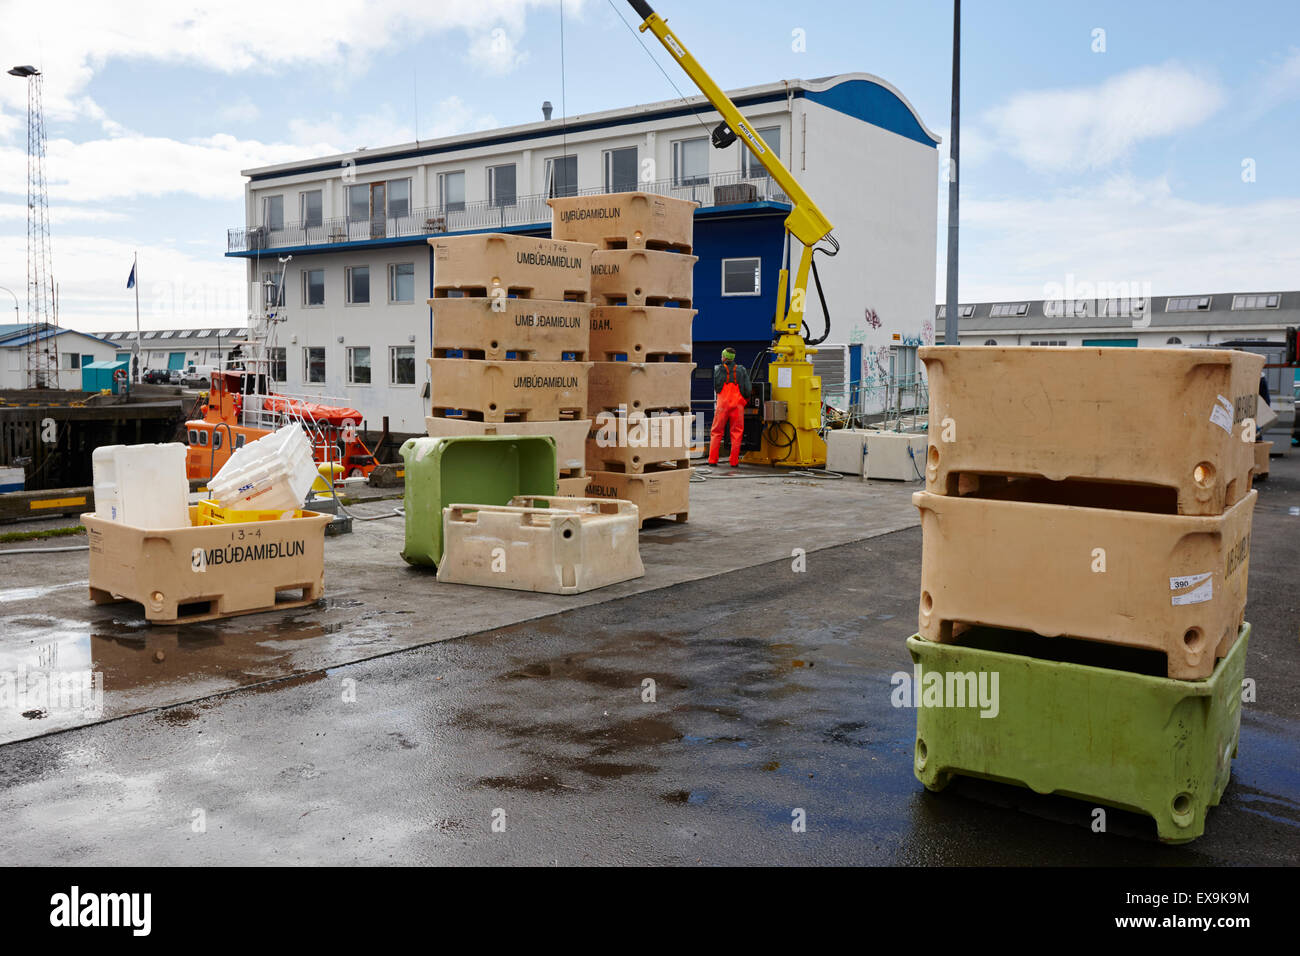 unloading fish boxes from fishing boats in reykjavik harbour iceland - Stock Image